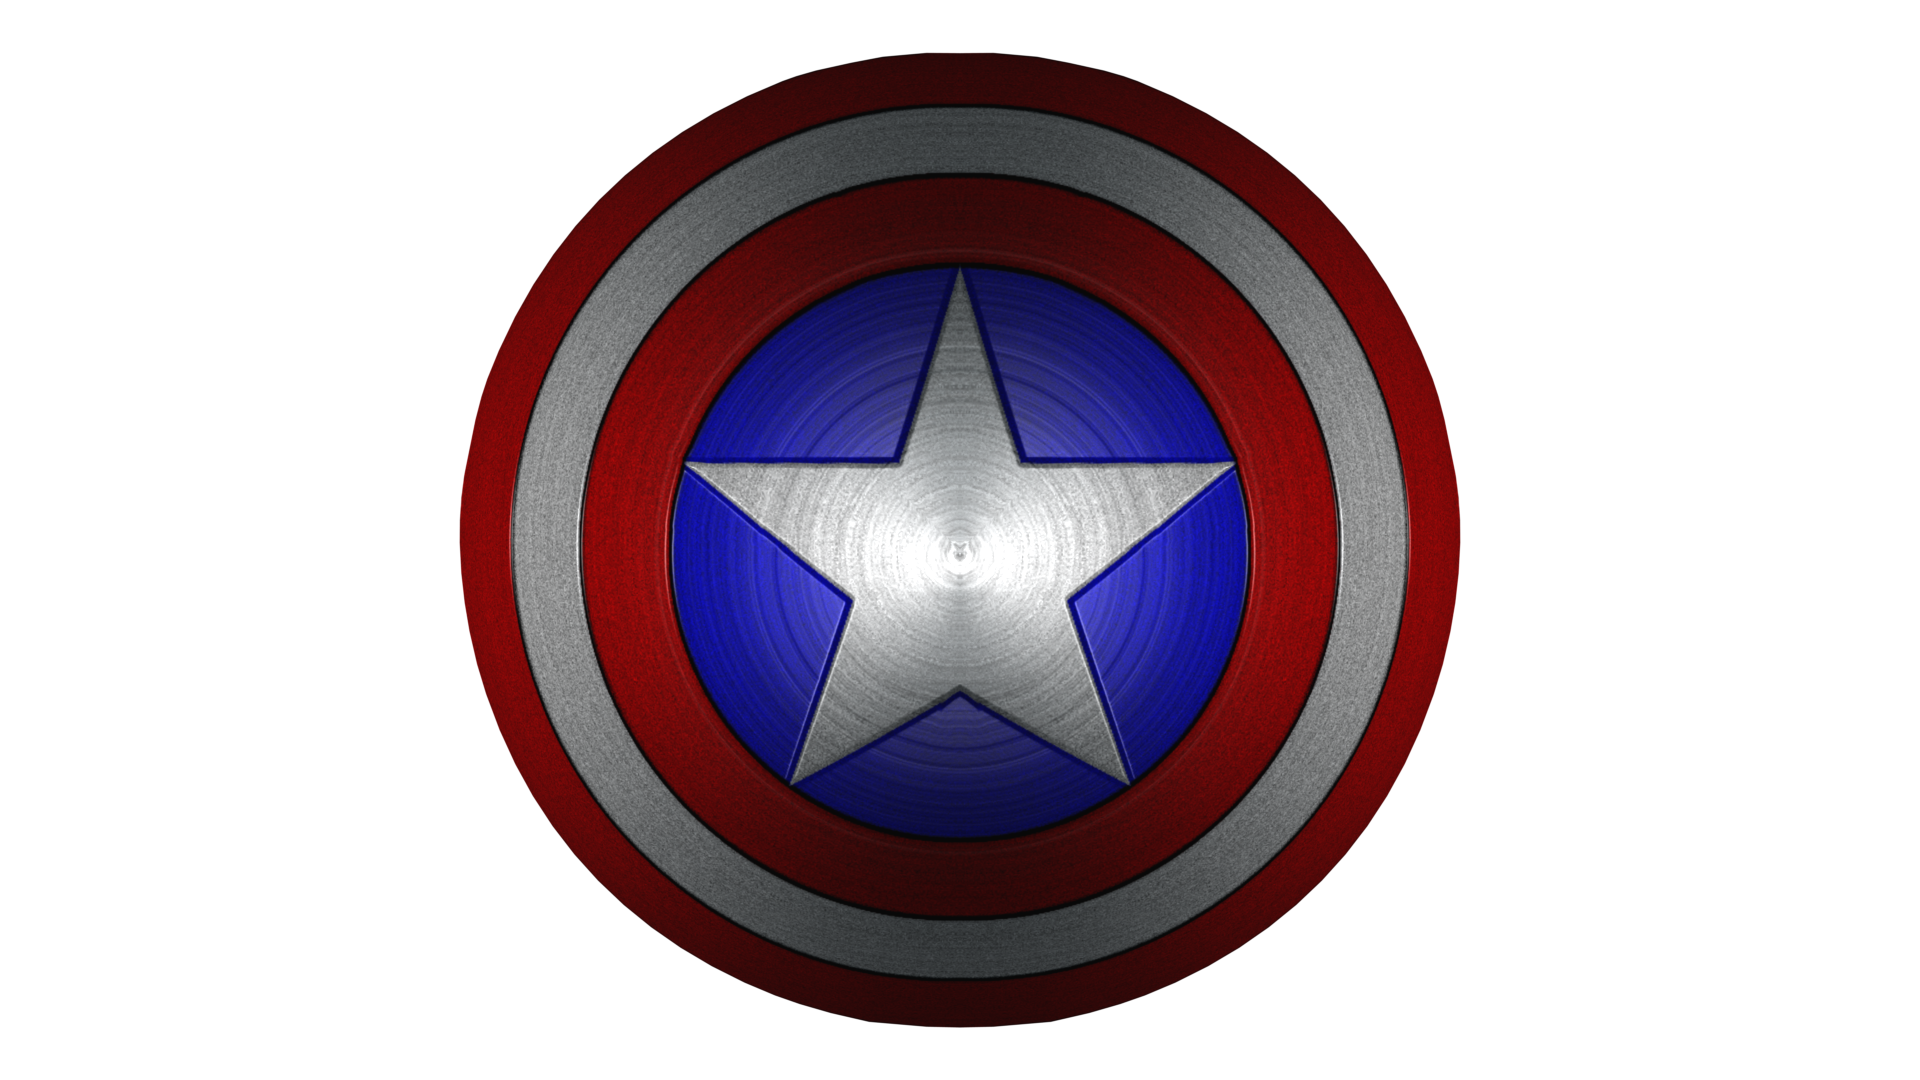 Captain America Shield Hd Wallpaper Background Image 1920x1080